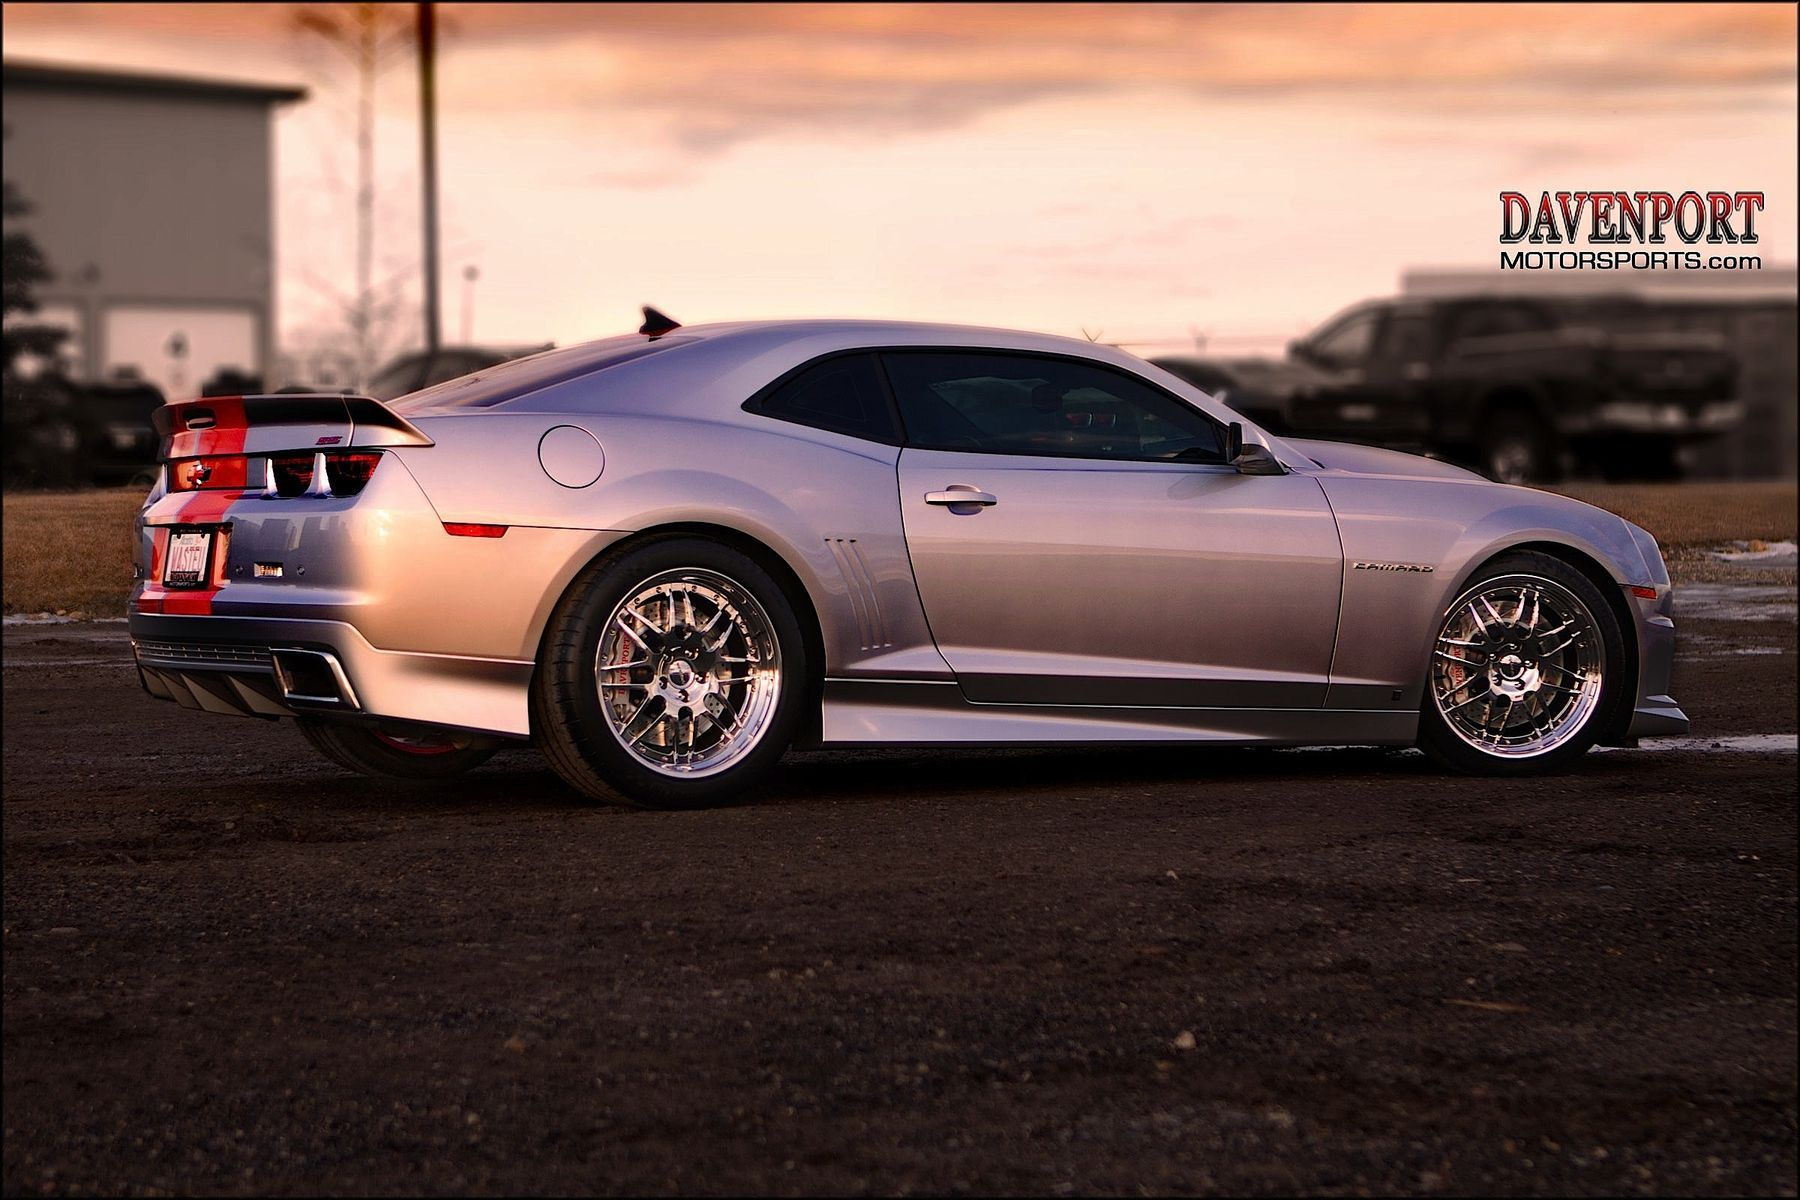 2010 Chevrolet Camaro | Troy Pidherney's Supercharged Camaro on Forgeline DE3S Wheels